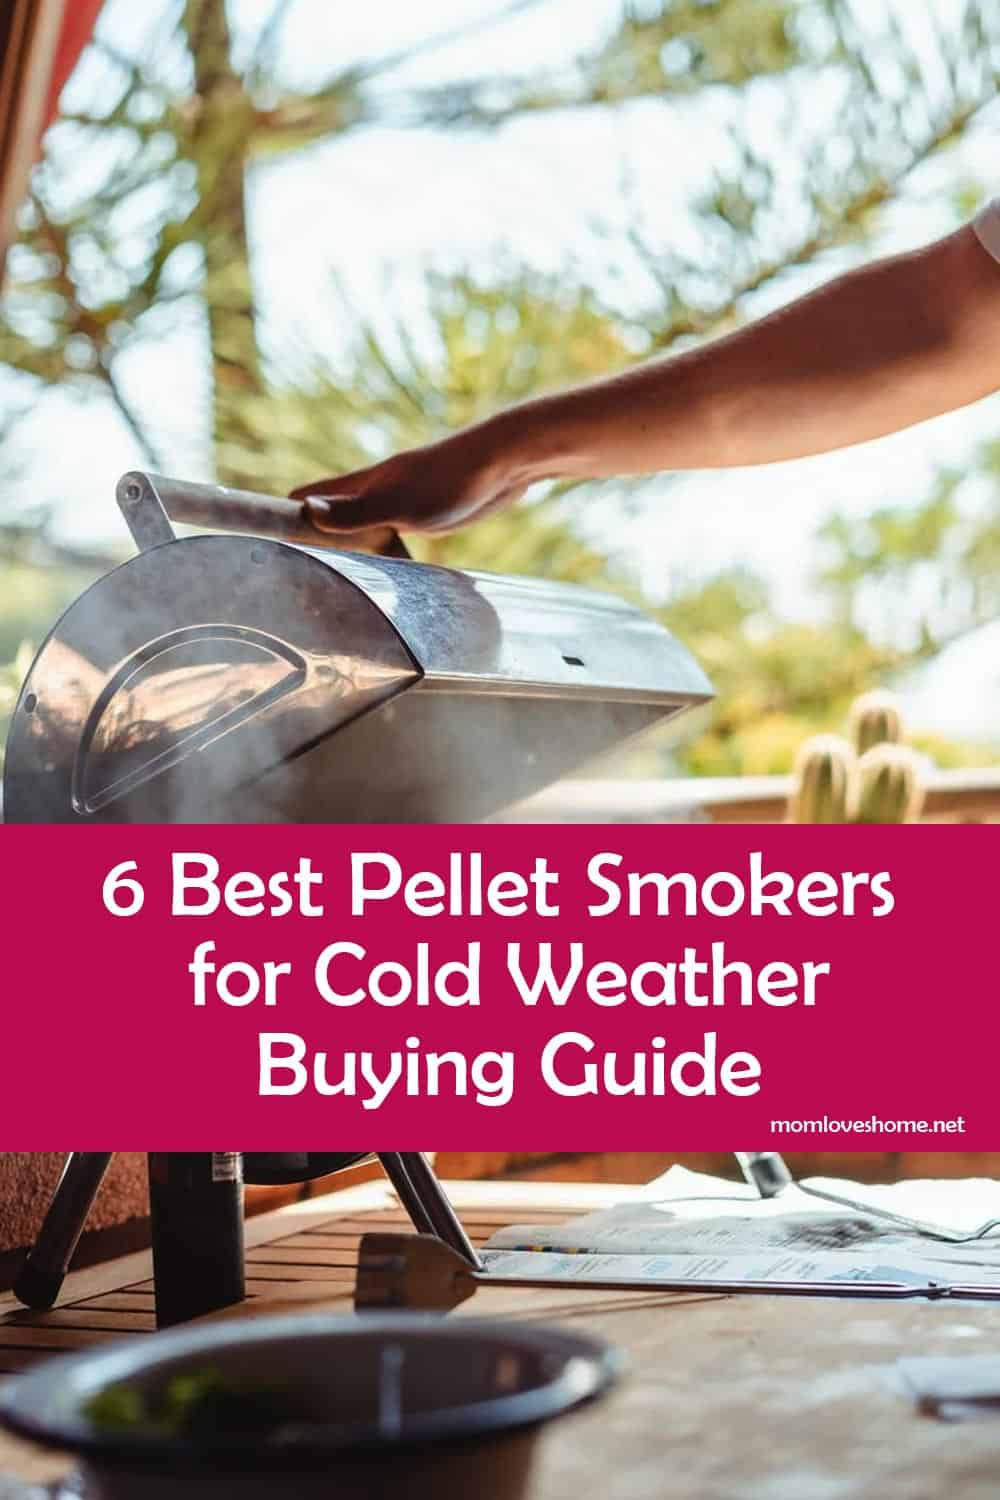 Best Pellet Smokers for Cold Weather